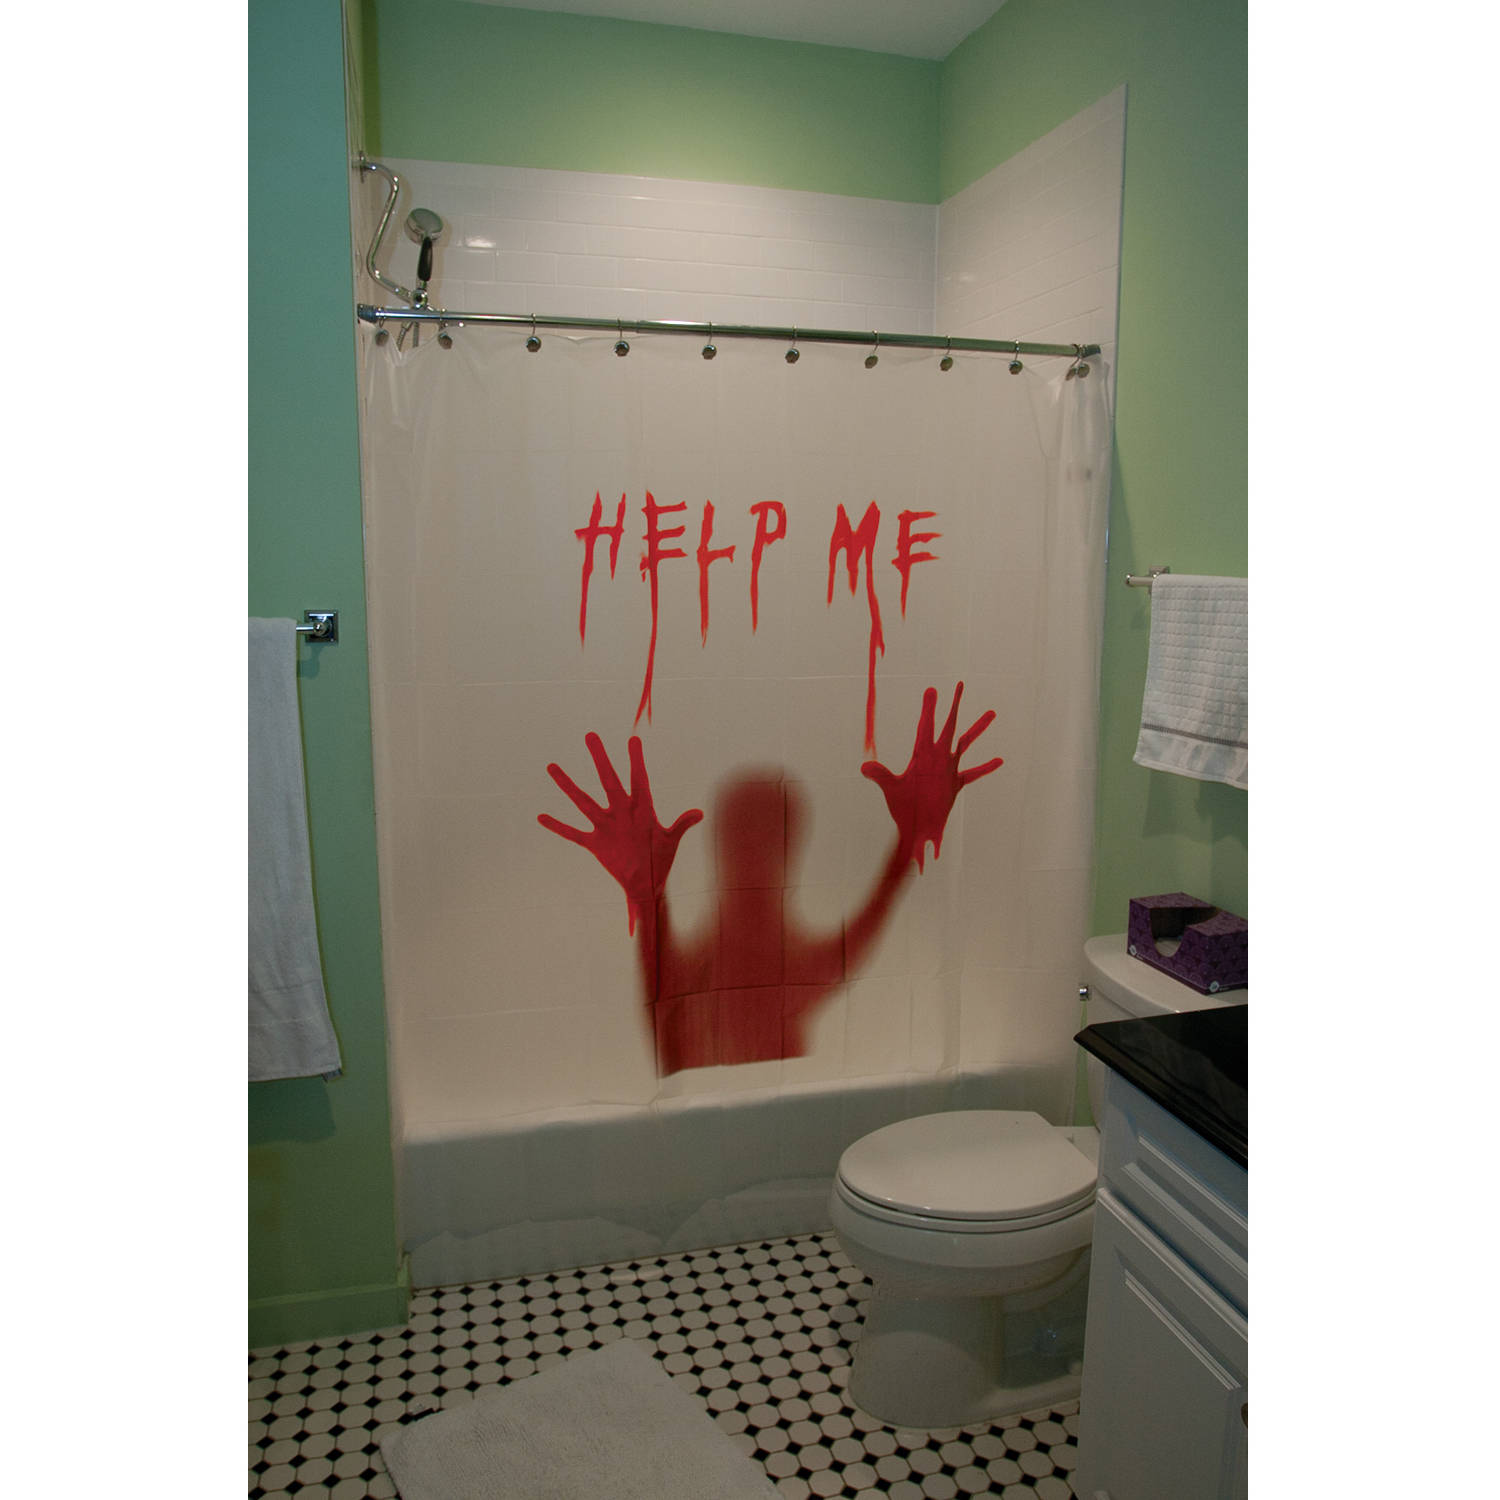 ★Bloody Help me Horror Scary Shower Curtain by Ambesonne™ >>>If you are looking for Bloody Help me Horror Scary Shower Curtain by Ambesonne Yes you see this. online shopping has now gone a long way; it has changed the way consumers and entrepreneurs do business.